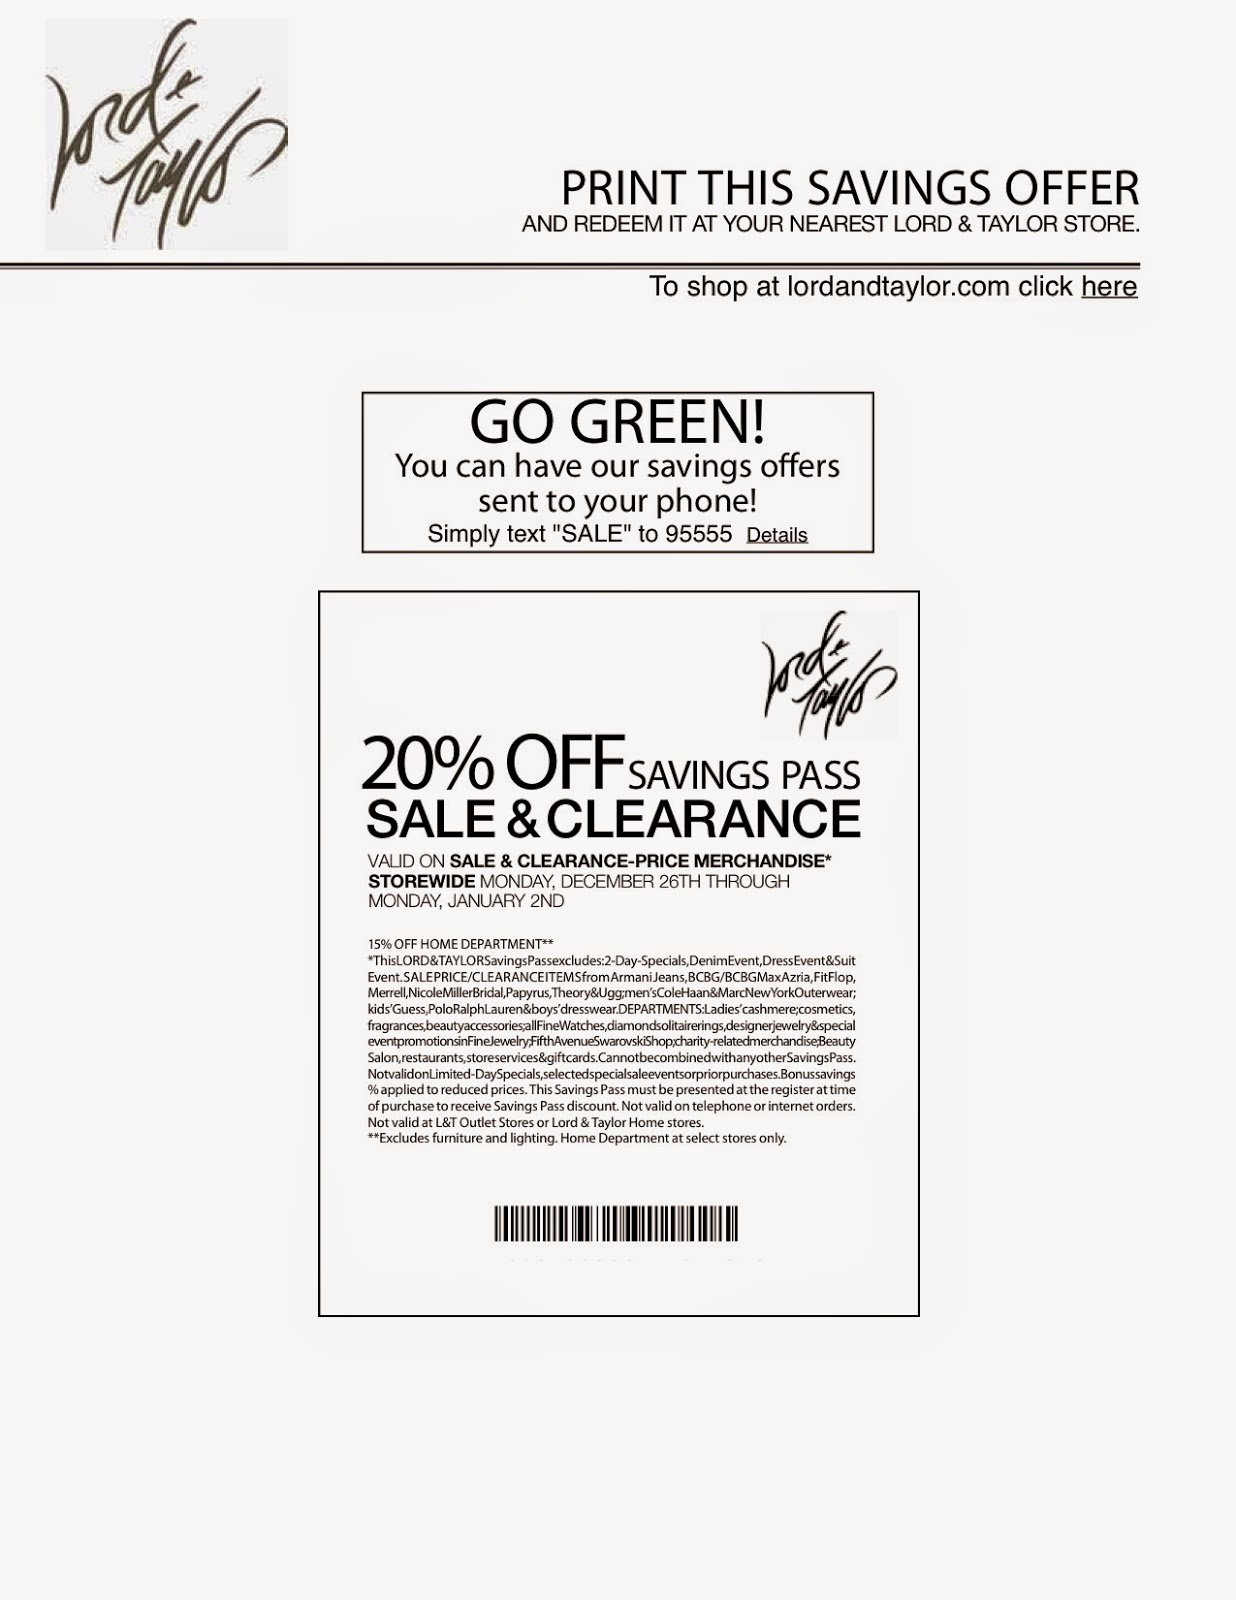 picture relating to Lord and Taylor Printable Coupon called Lord and taylor printable coupon could 2018 : Black friday